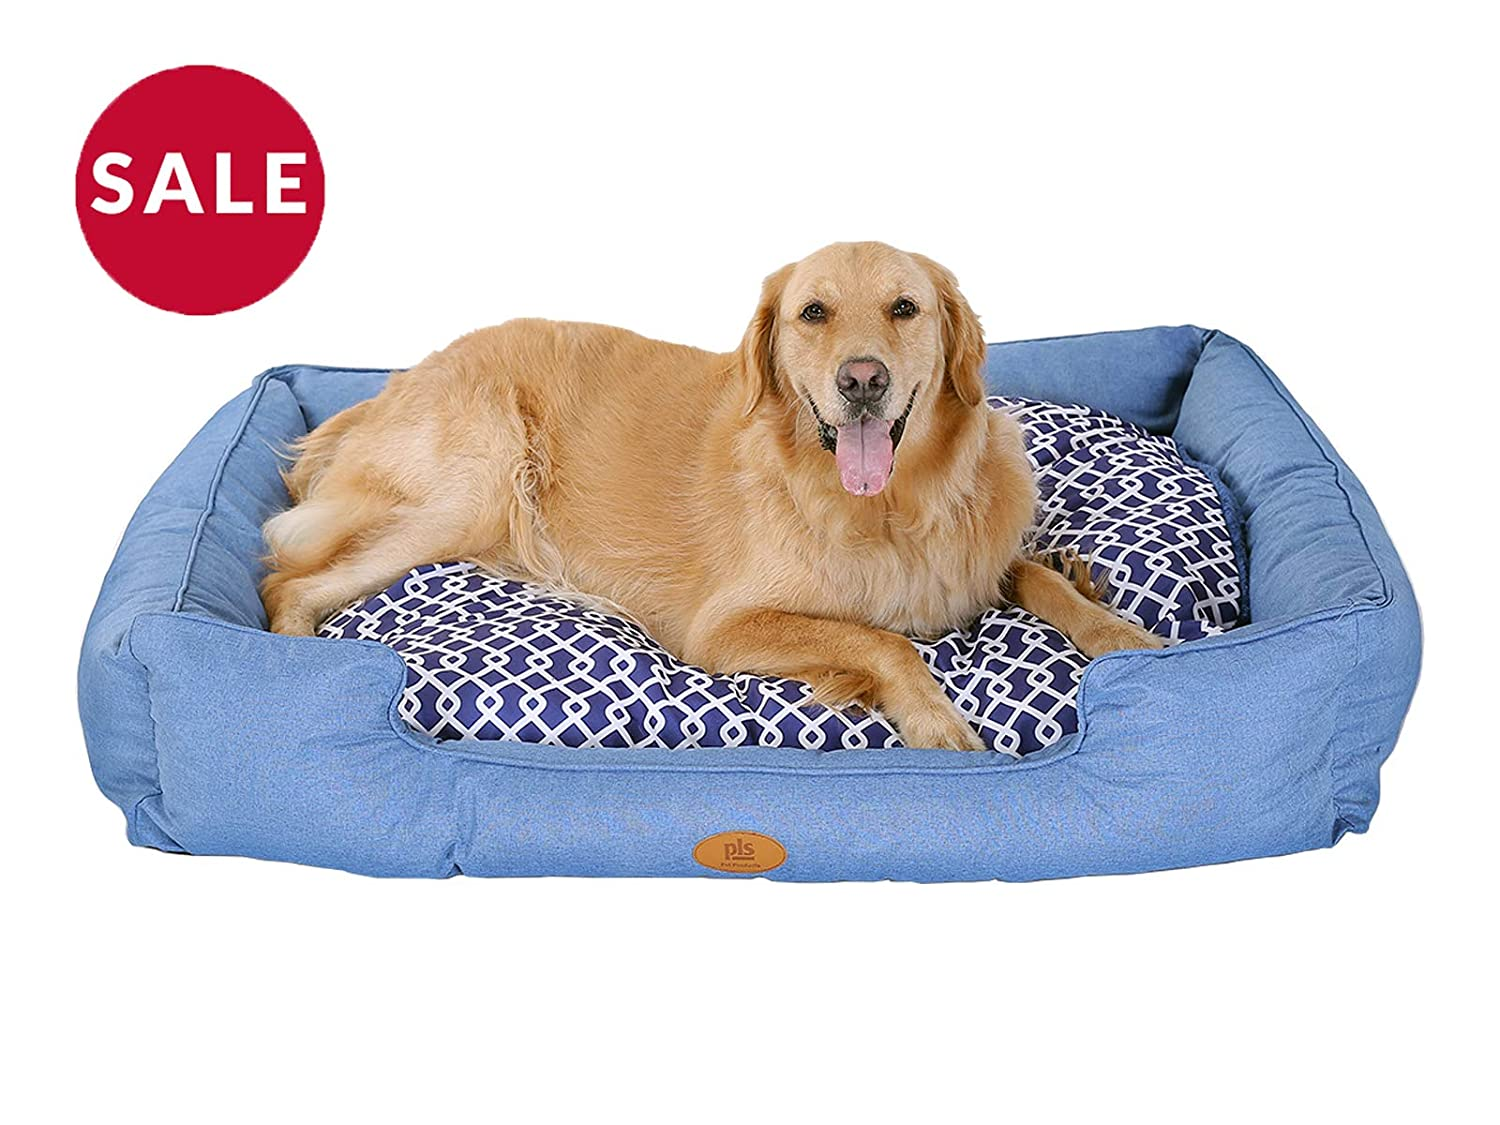 Extra Large 35\ [New] PLS Birdsong Trellis Bolster Extra Large Dog Bed, Pet Bed, Cat Bed, bluee, Extra Large, Removable Cover, Completely Washable, Dog beds for Extra Large Dogs